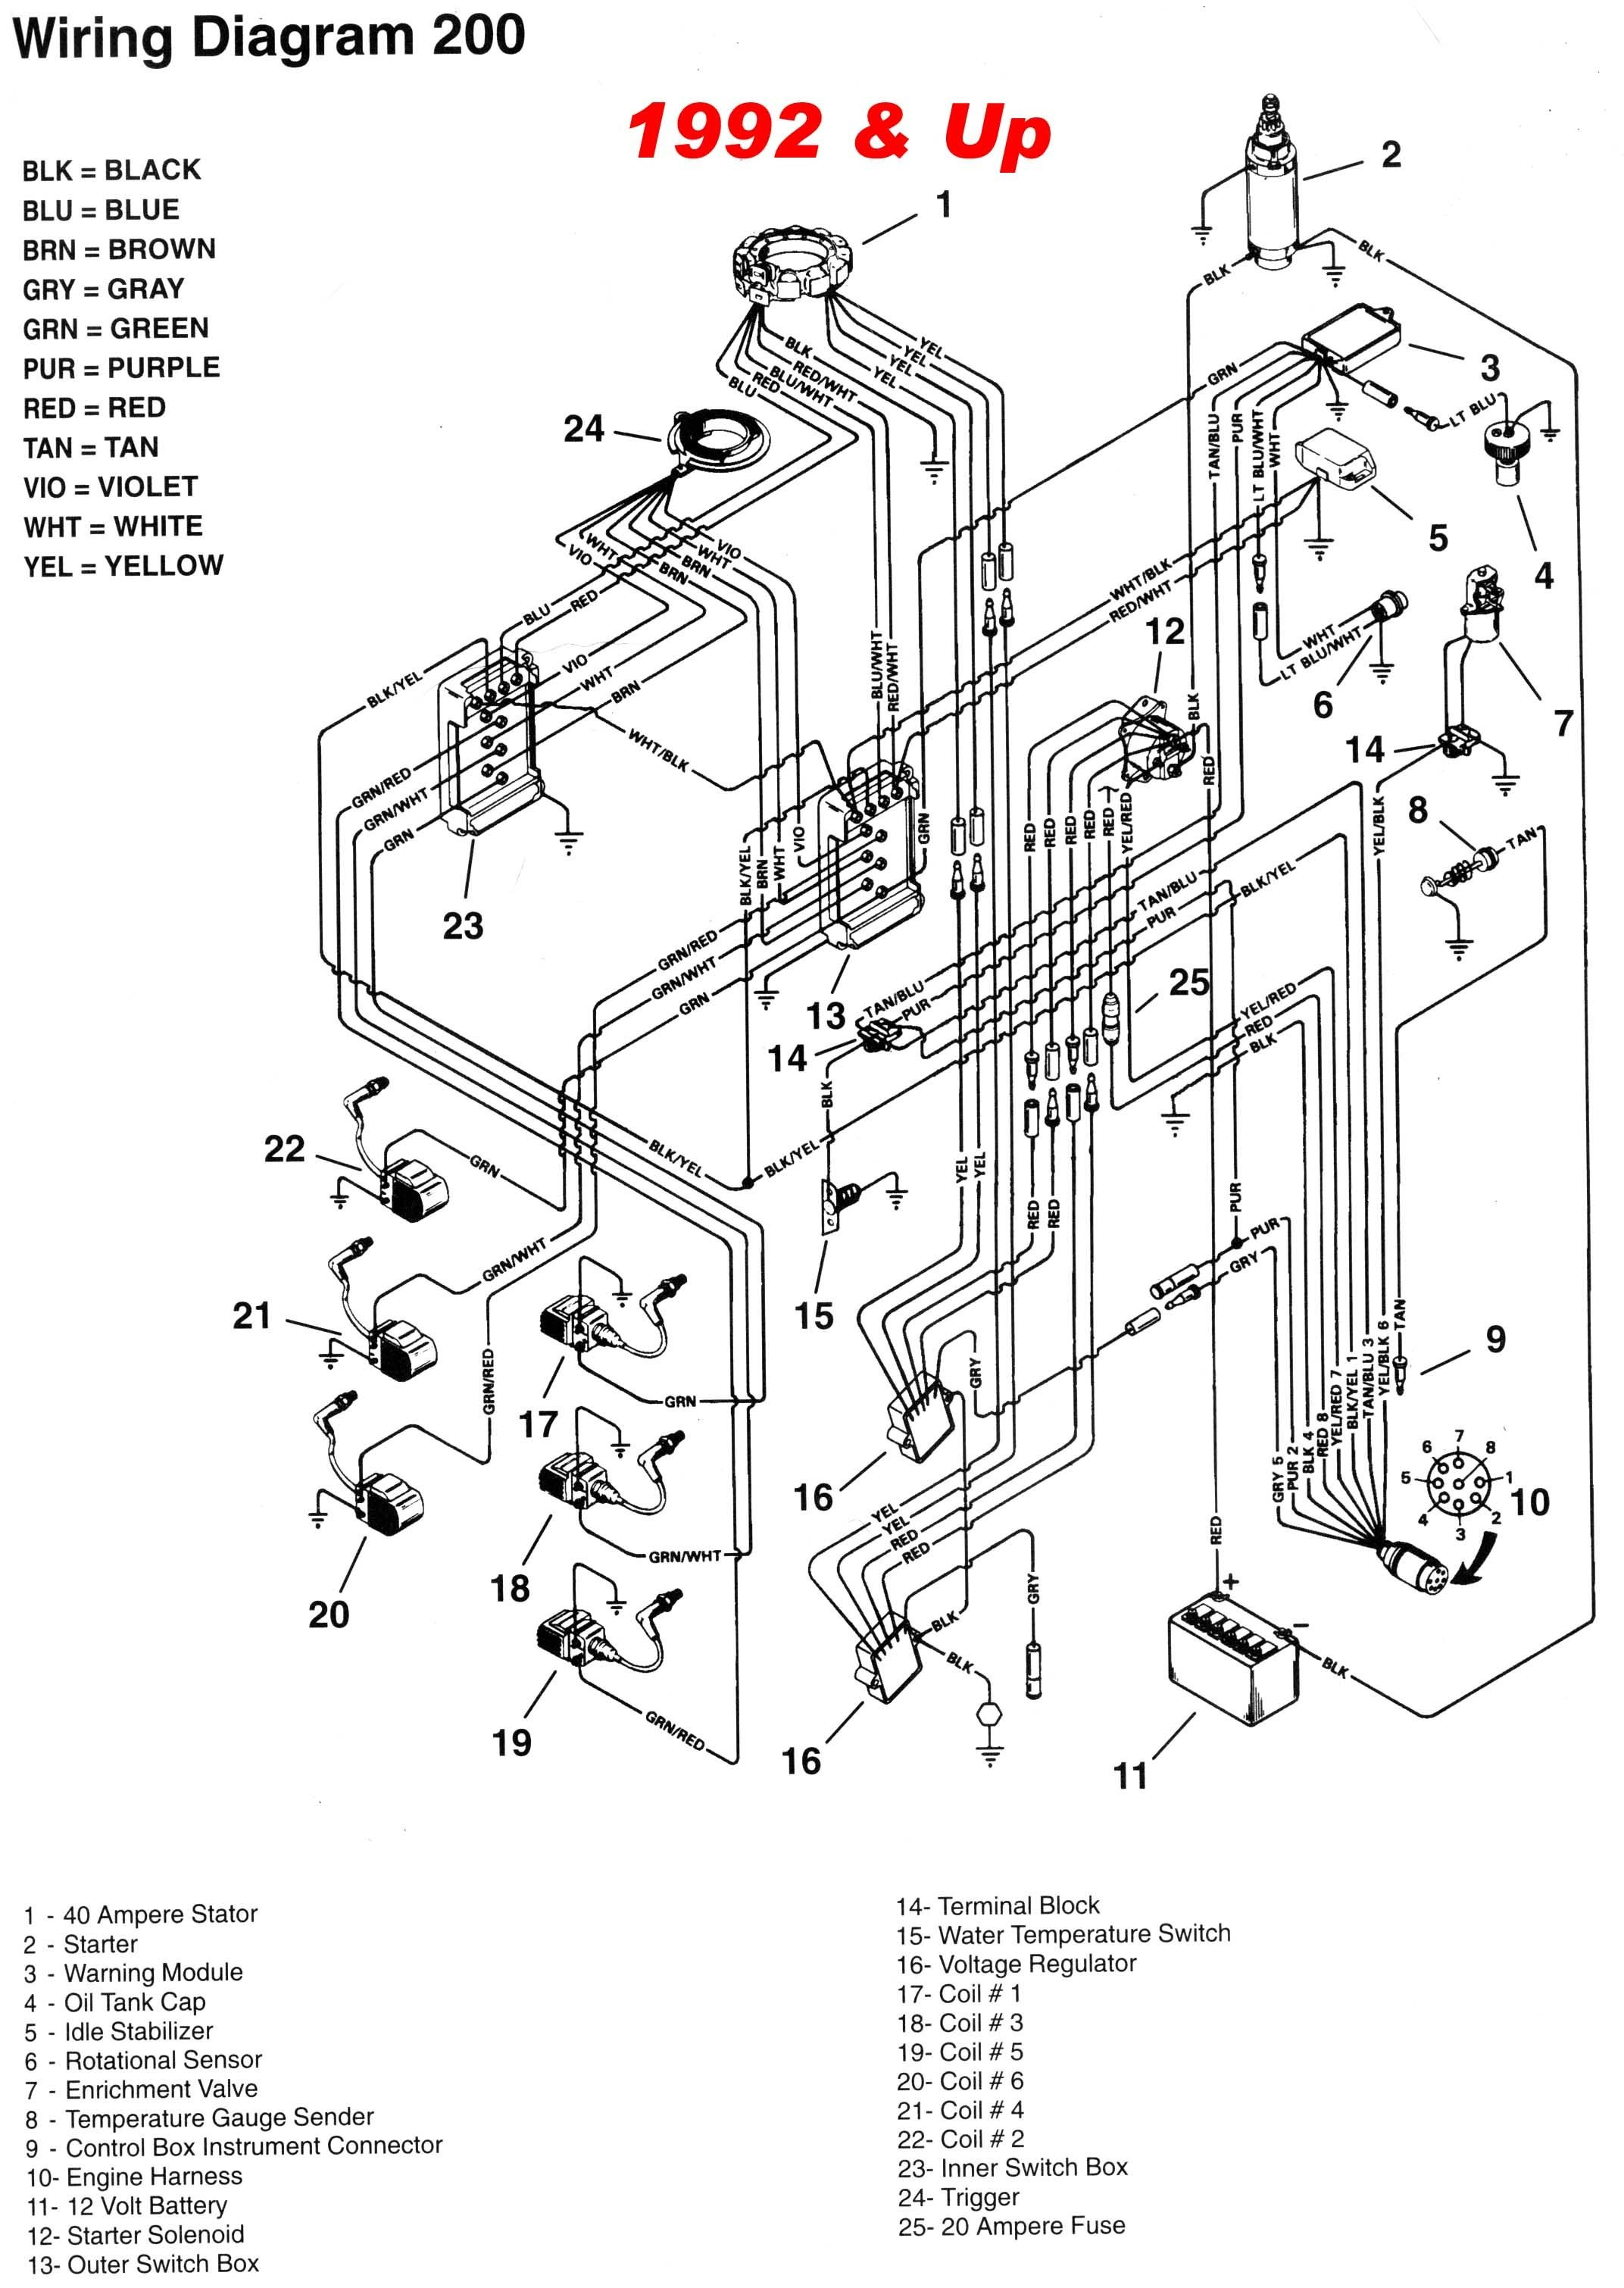 Mercury 115 Hp Wiring 51 Mercury Wiring Diagram Of Mercury 115 Hp Wiring 51 Mercury Wiring Diagram